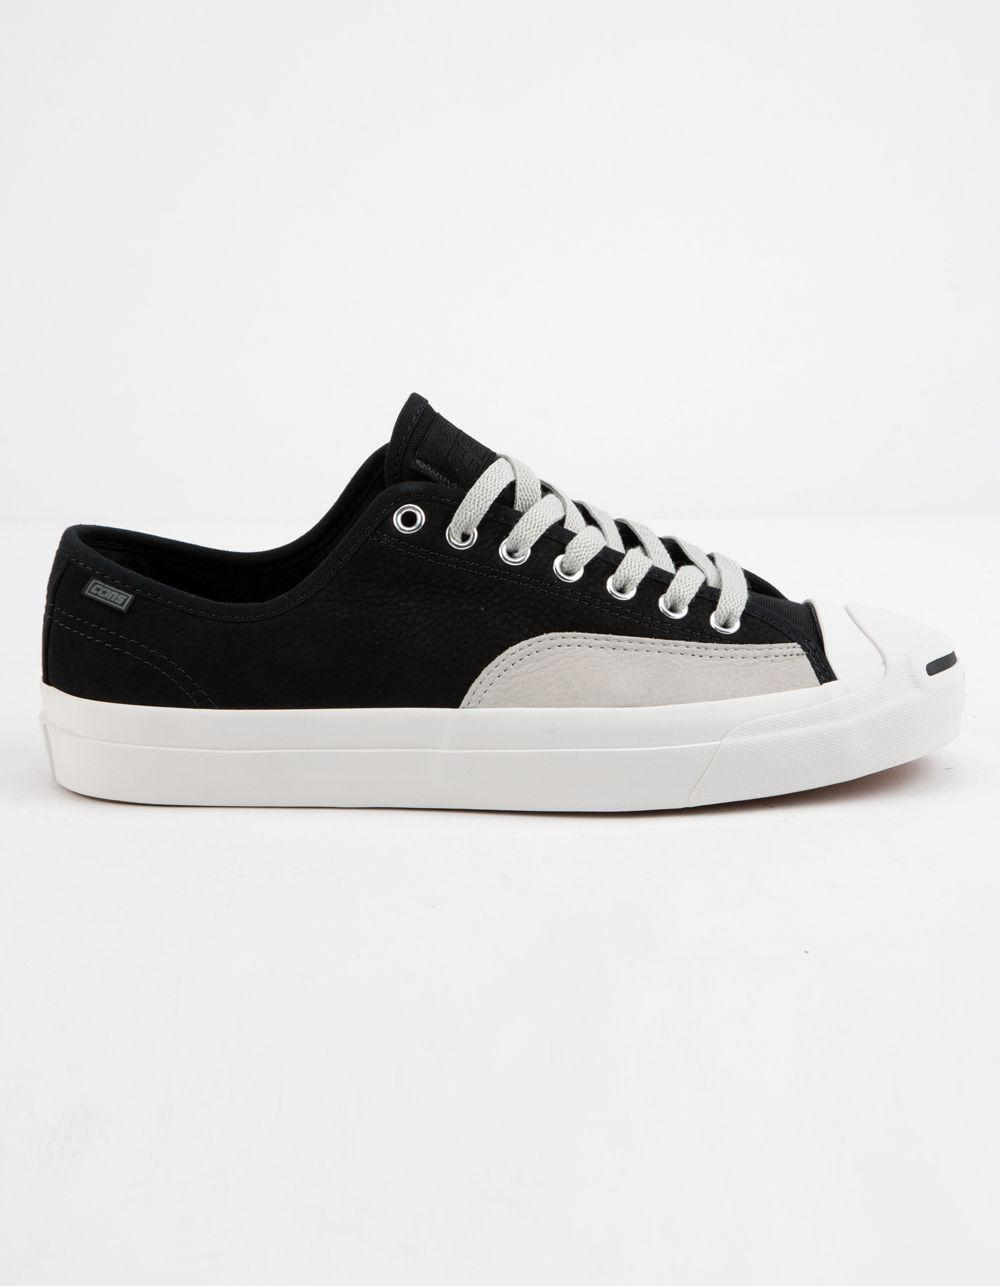 Lyst - Converse Jack Purcell Pro Leather Low Top Shoes in Black 883a60f4e